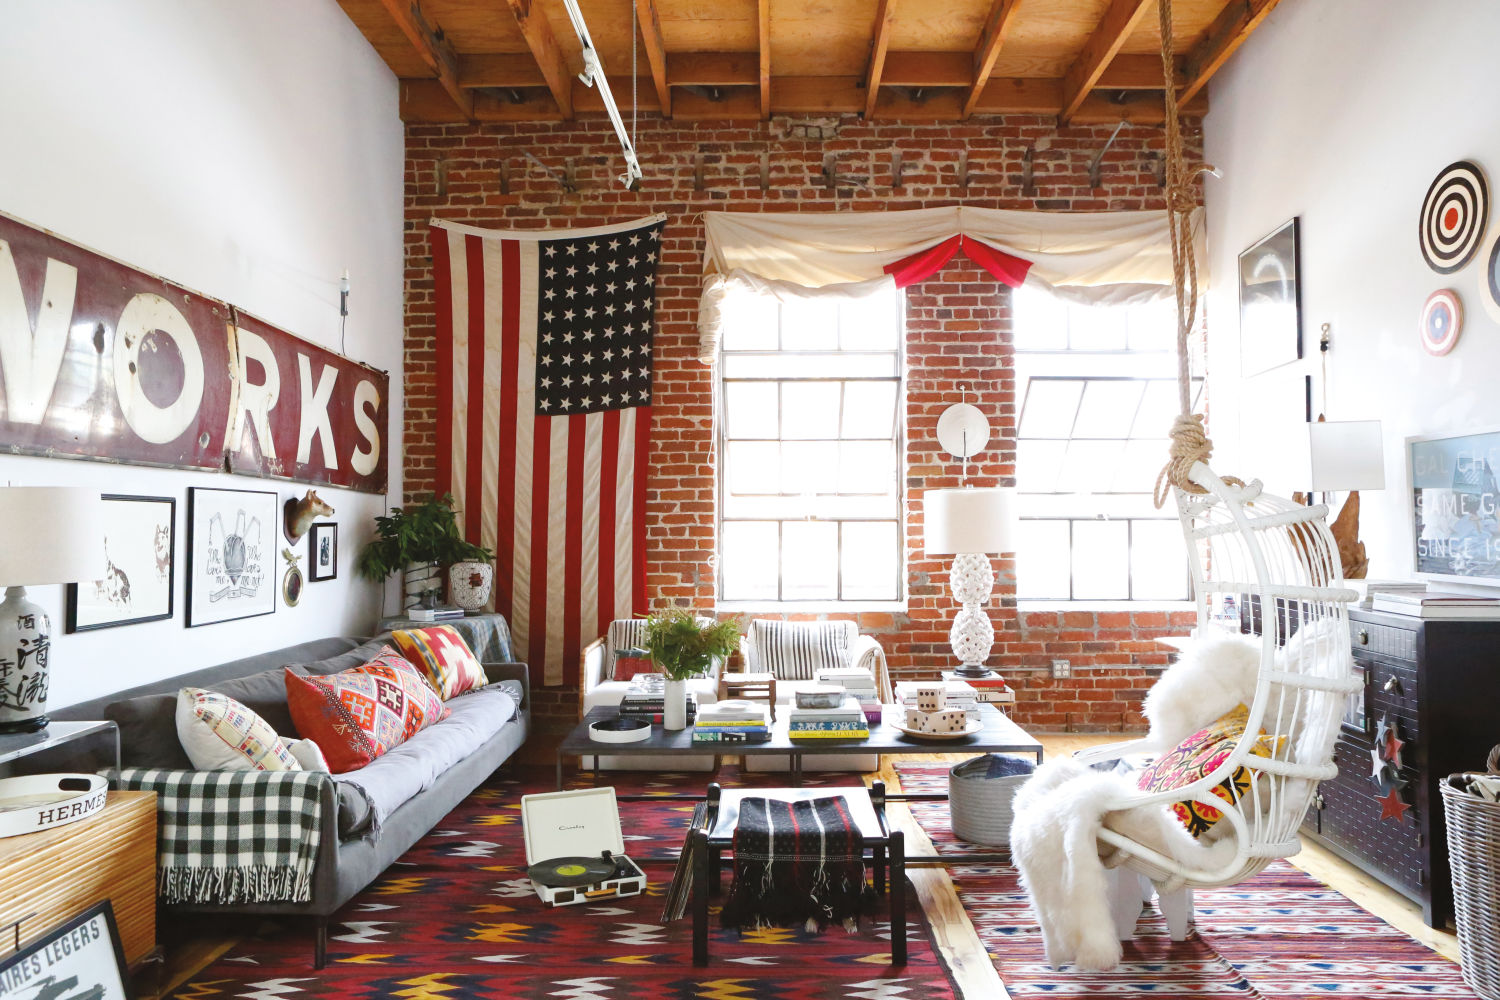 Merveilleux How Portlander Max Humphrey Creates Color Happy, Boldly Patterned Rooms |  Portland Monthly